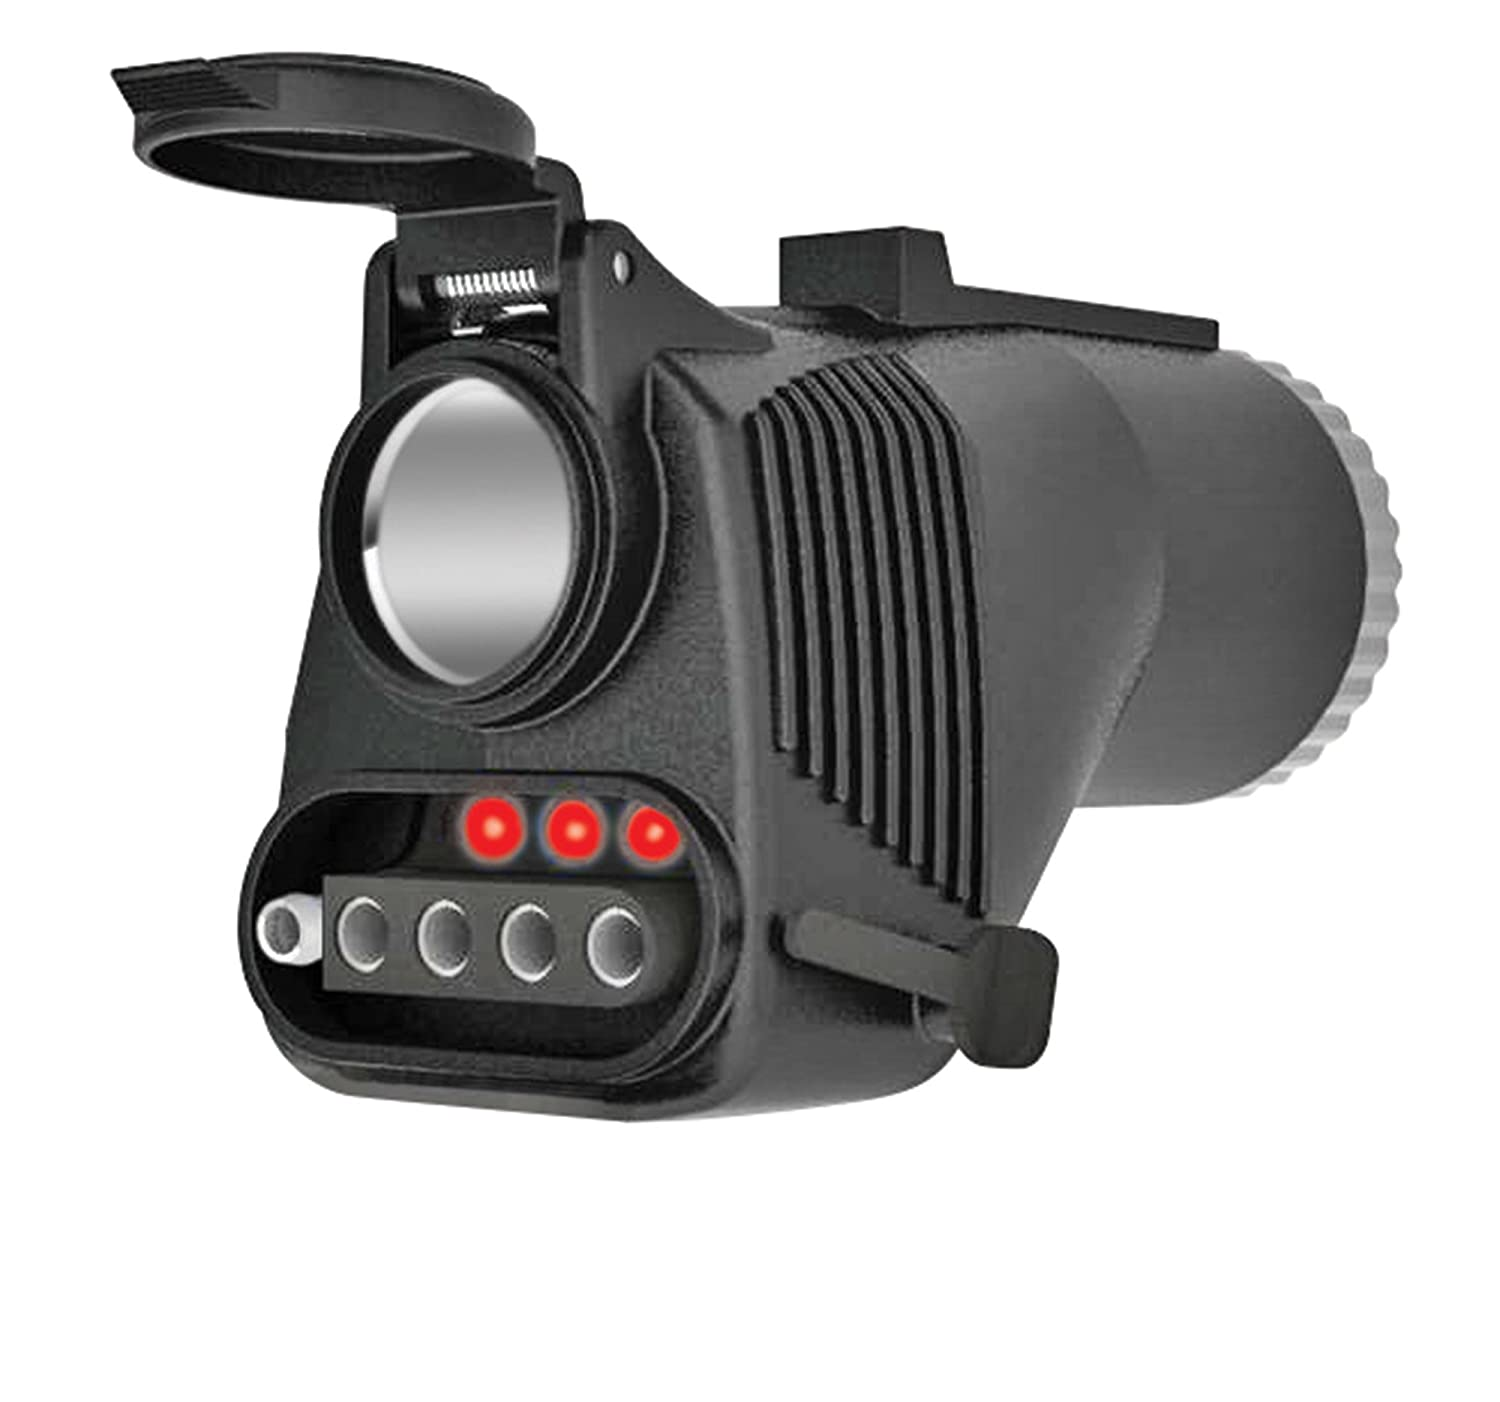 Amazon.com: Reese Towpower 78119 Adapter with Built-in 12V Power ...